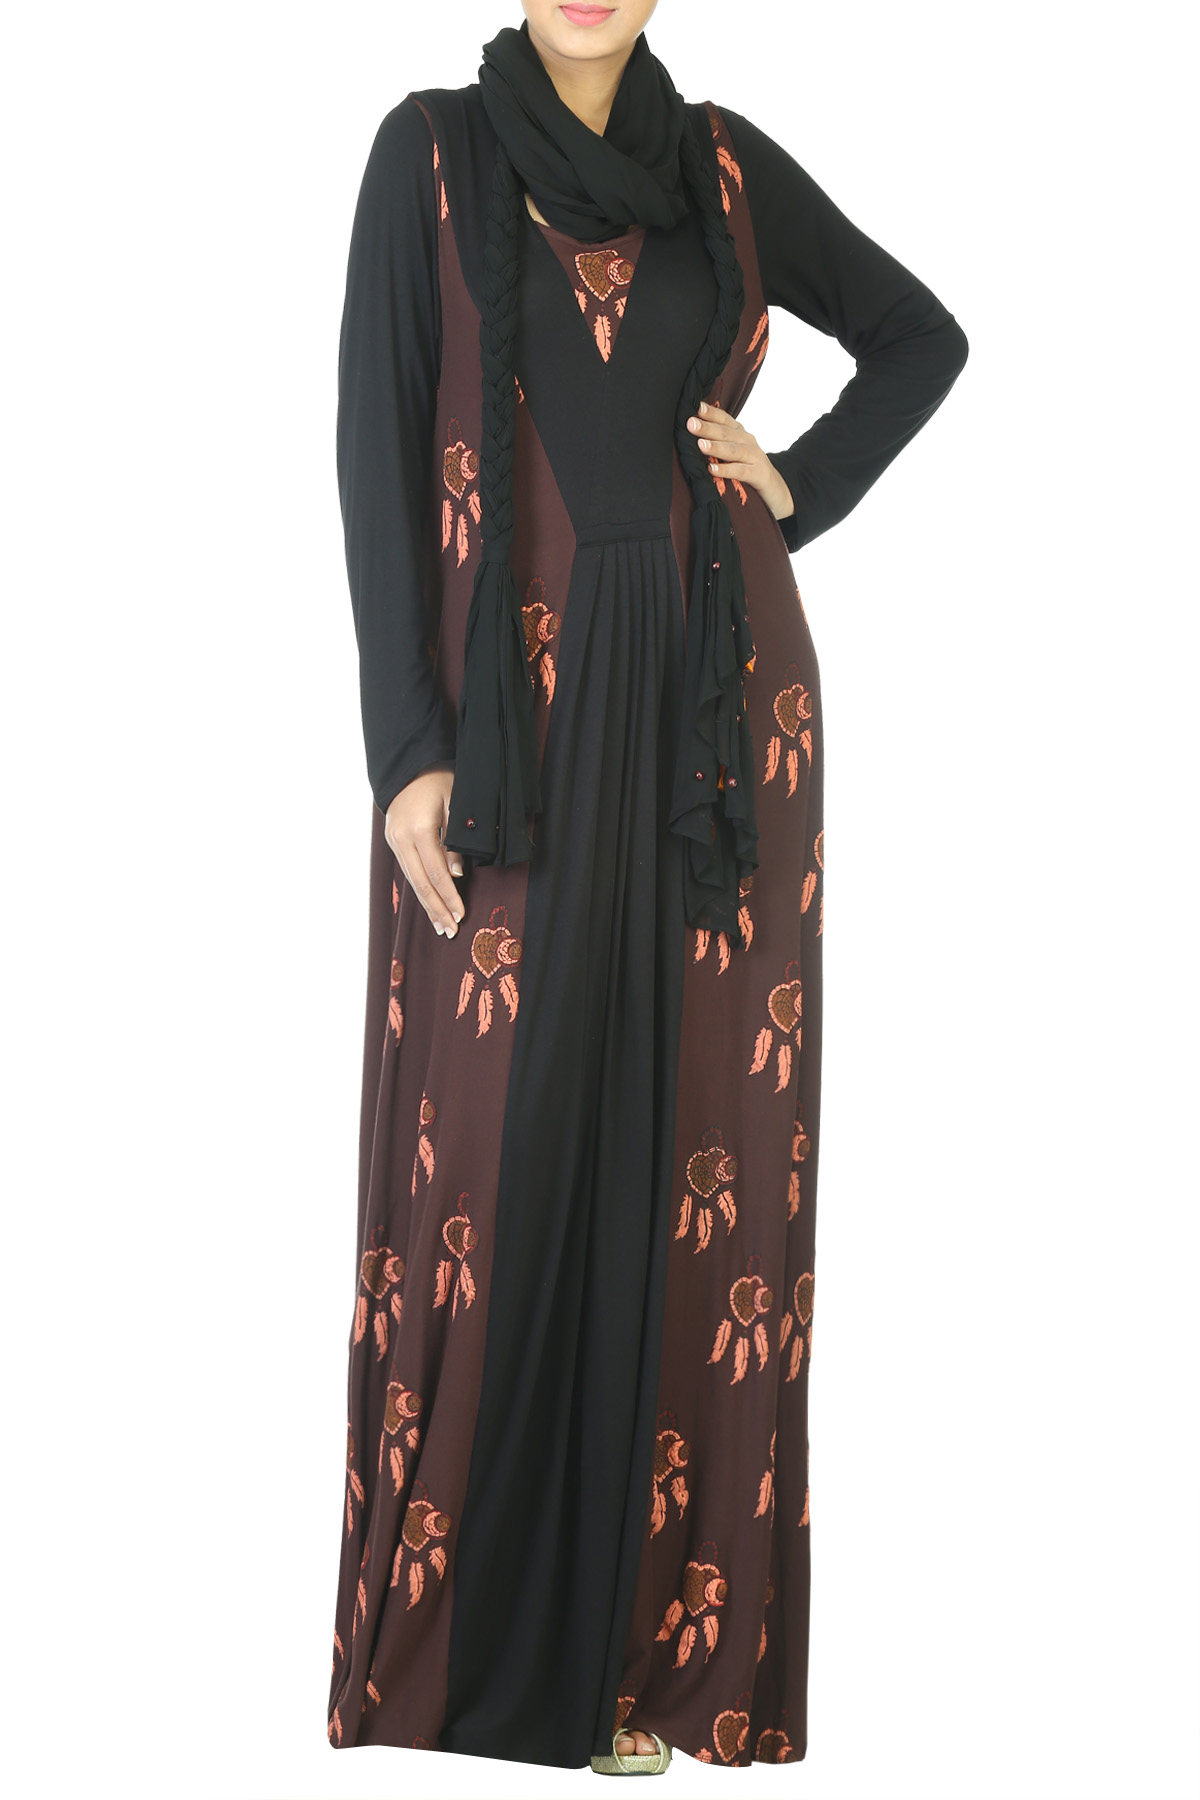 Black Full Length Maxi With Braided Scarf